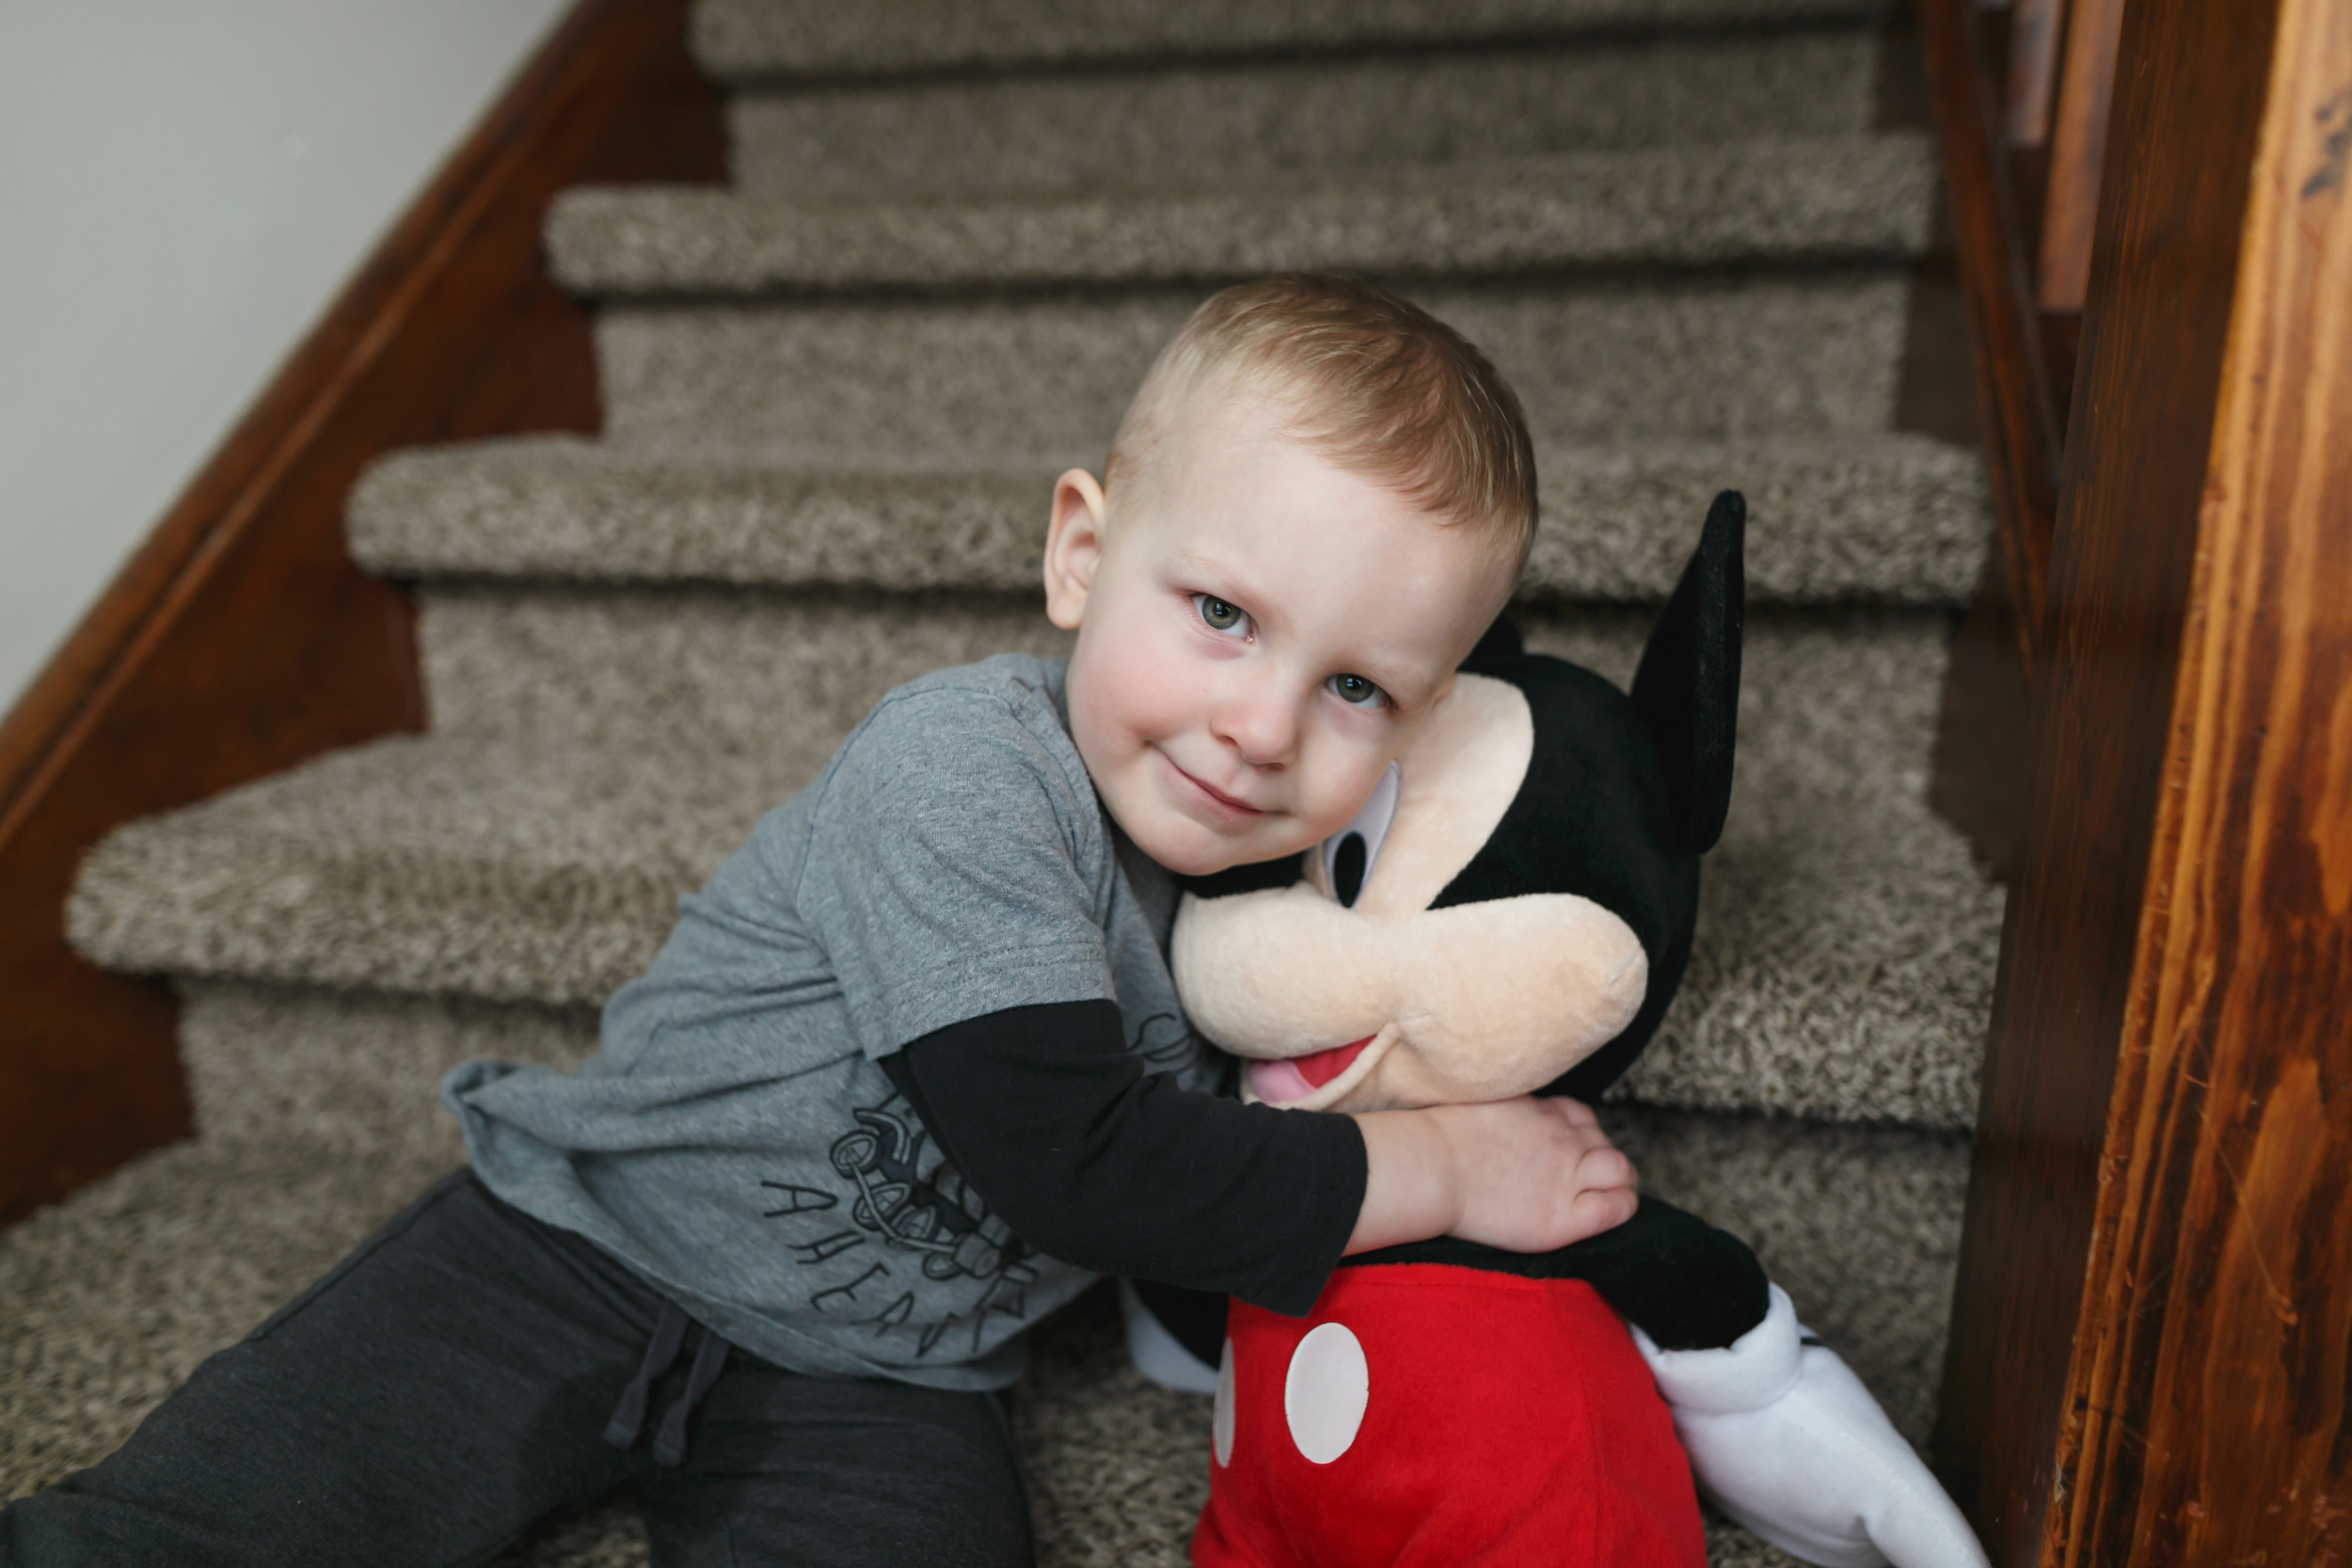 """I love his love for """"Big Huge Mickey"""" and all his other stuffed animals. He and his brother love stuffed animals, and I'm so glad. Ben still seems """"little"""" in this one area. He is growing out of all the other """"little boy"""" things. They can love on them as long as they want to, and they will still seem a little bit small."""